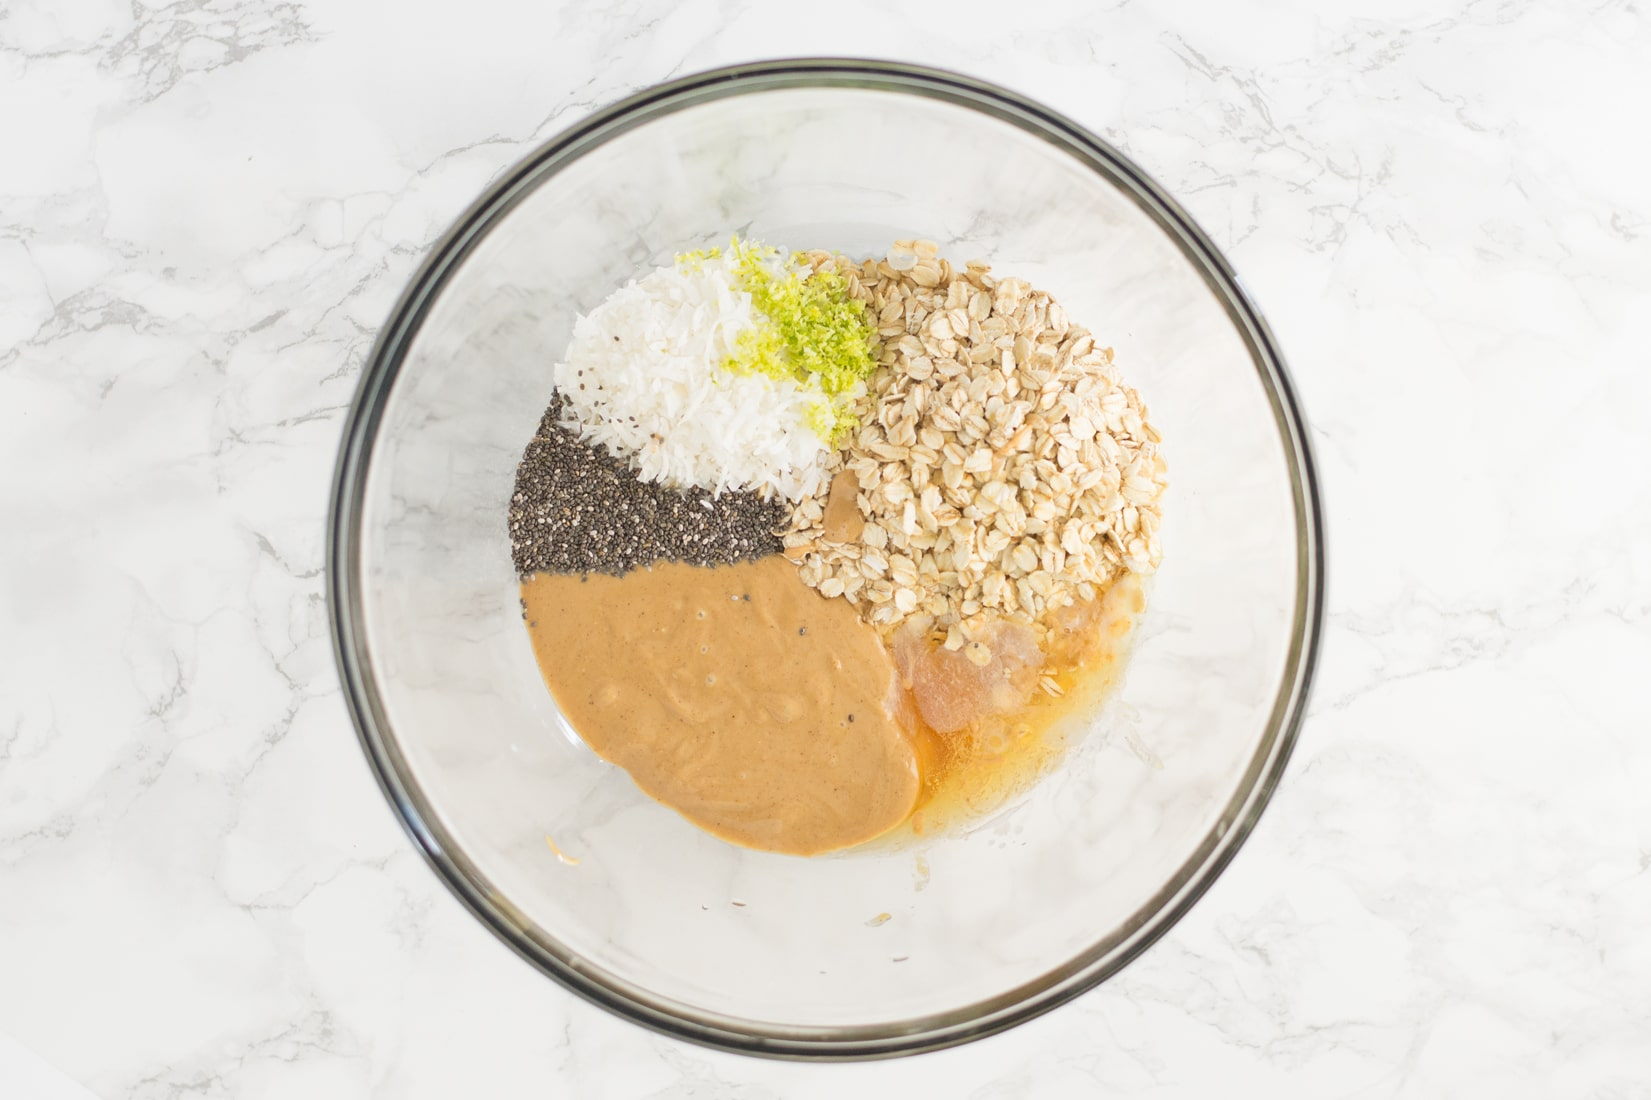 peanut butter, oats, chia seeds, coconut, lime zest, and agave in a mixing bowl on a marble counter